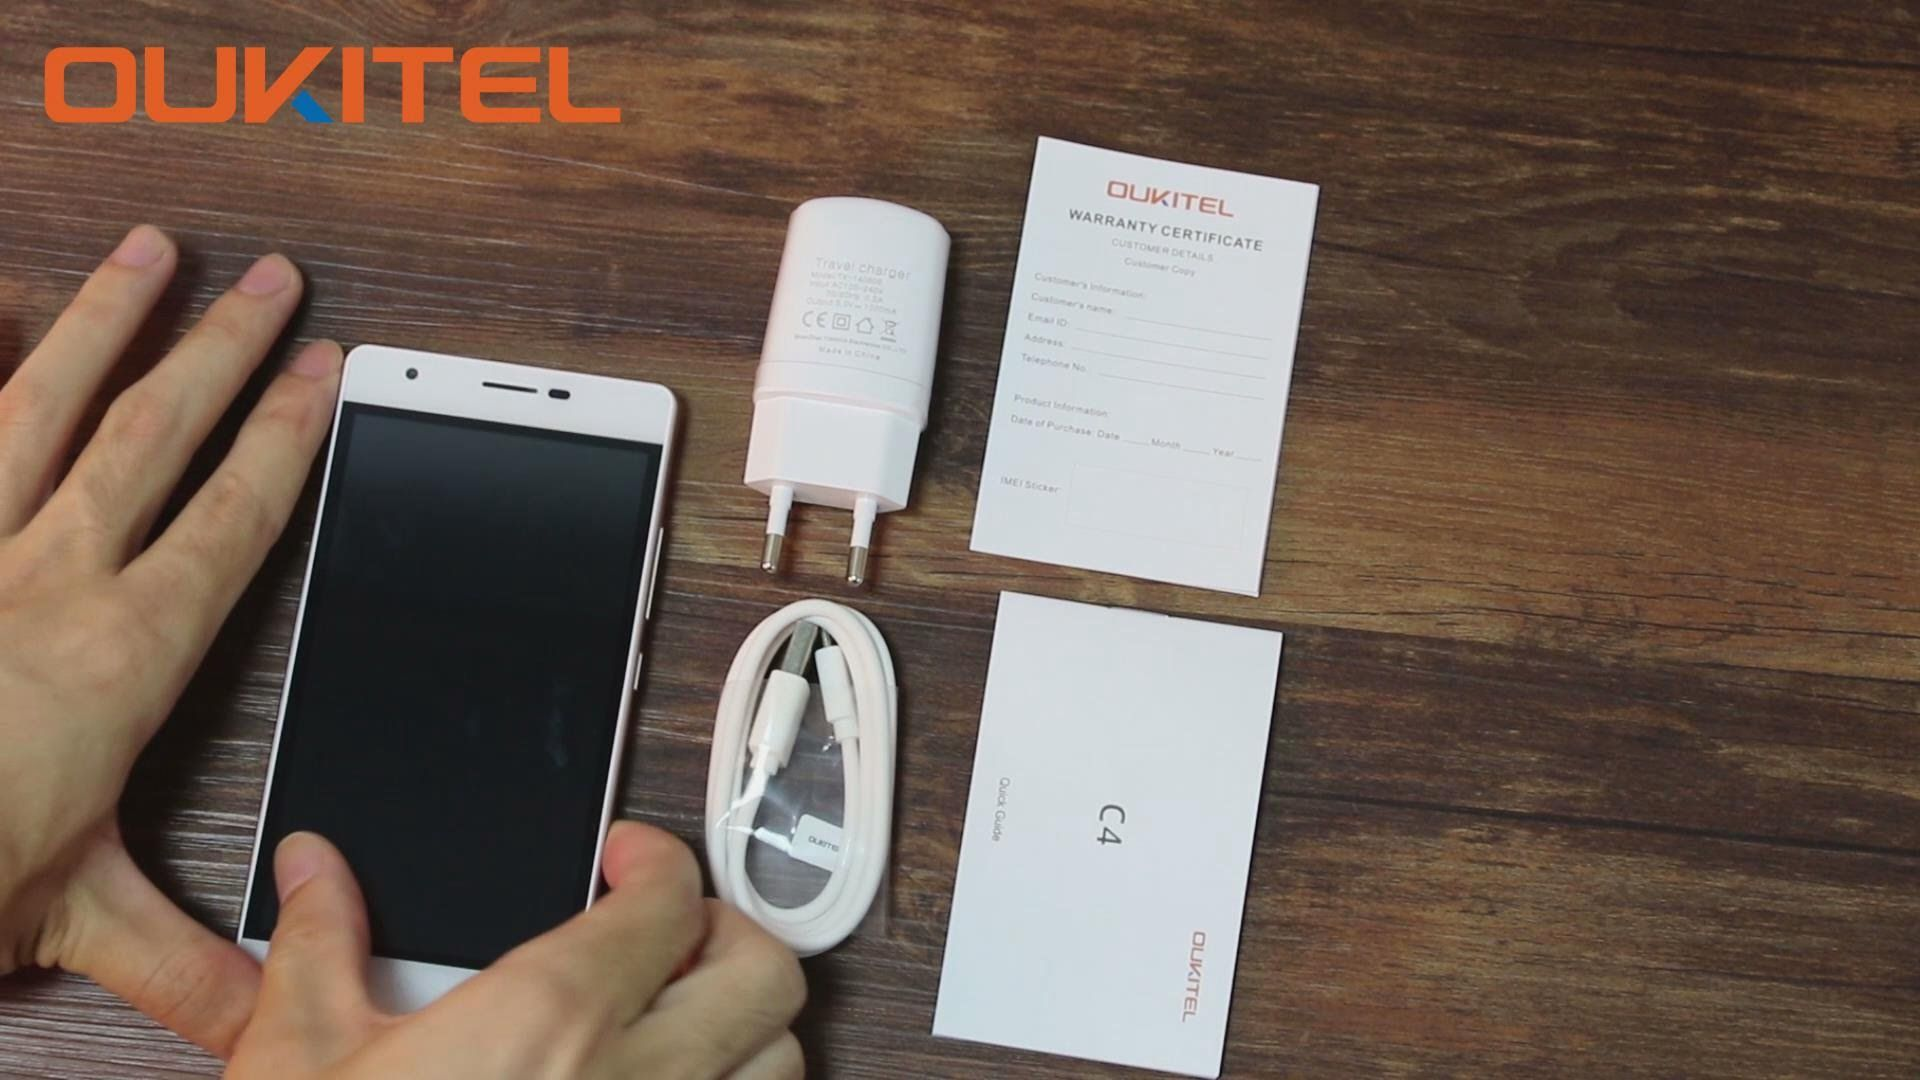 OUKITEL C4 unboxing & hands on video